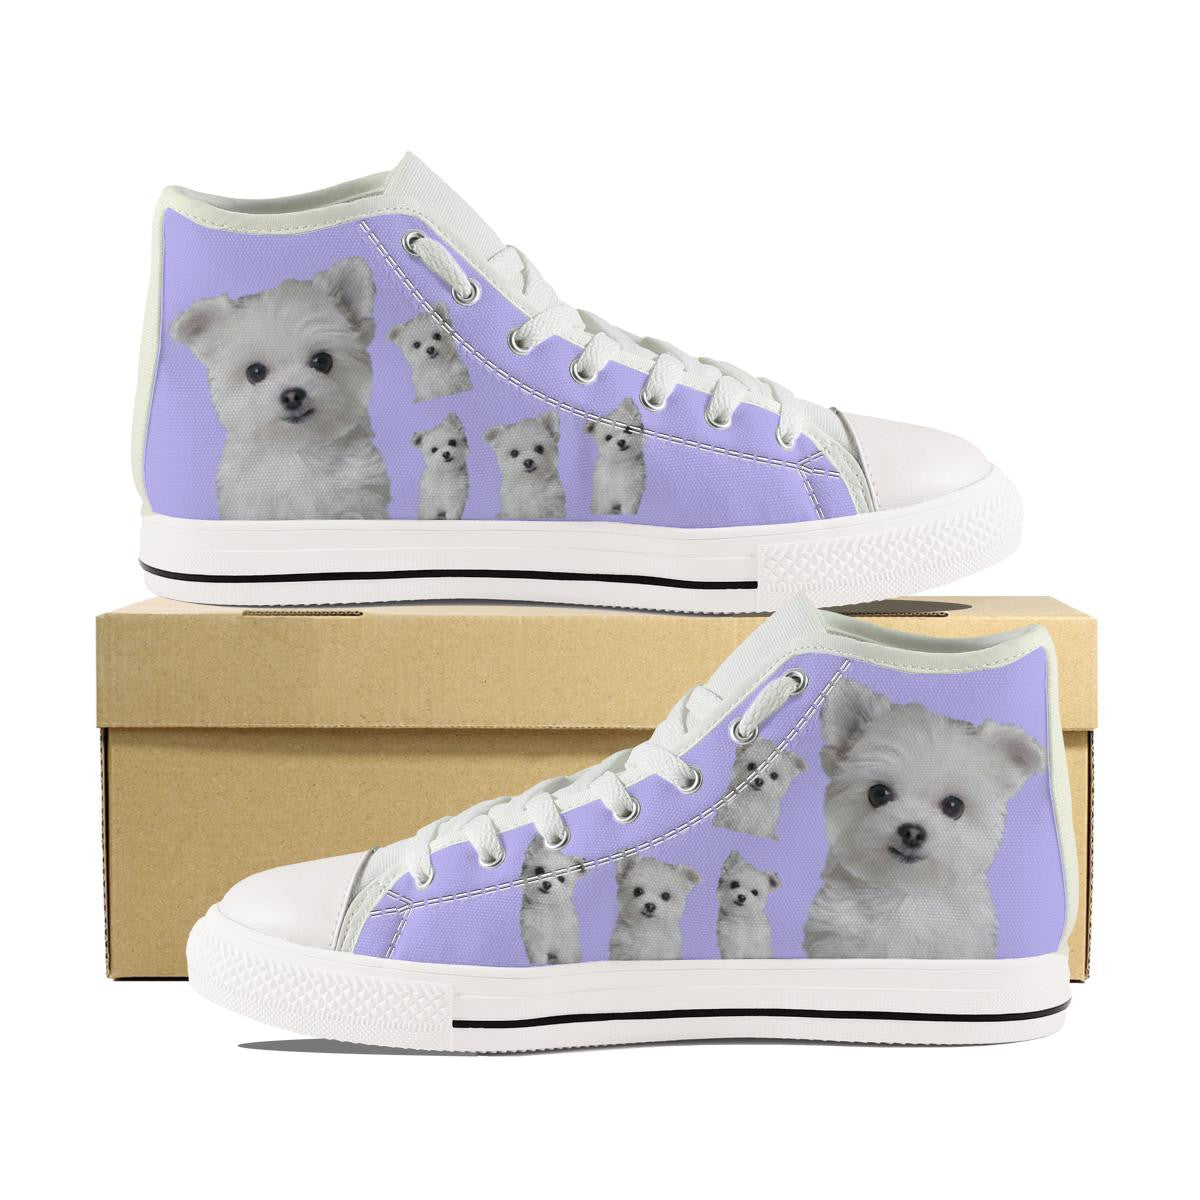 MALTESE PUPPY CANVAS SHOES